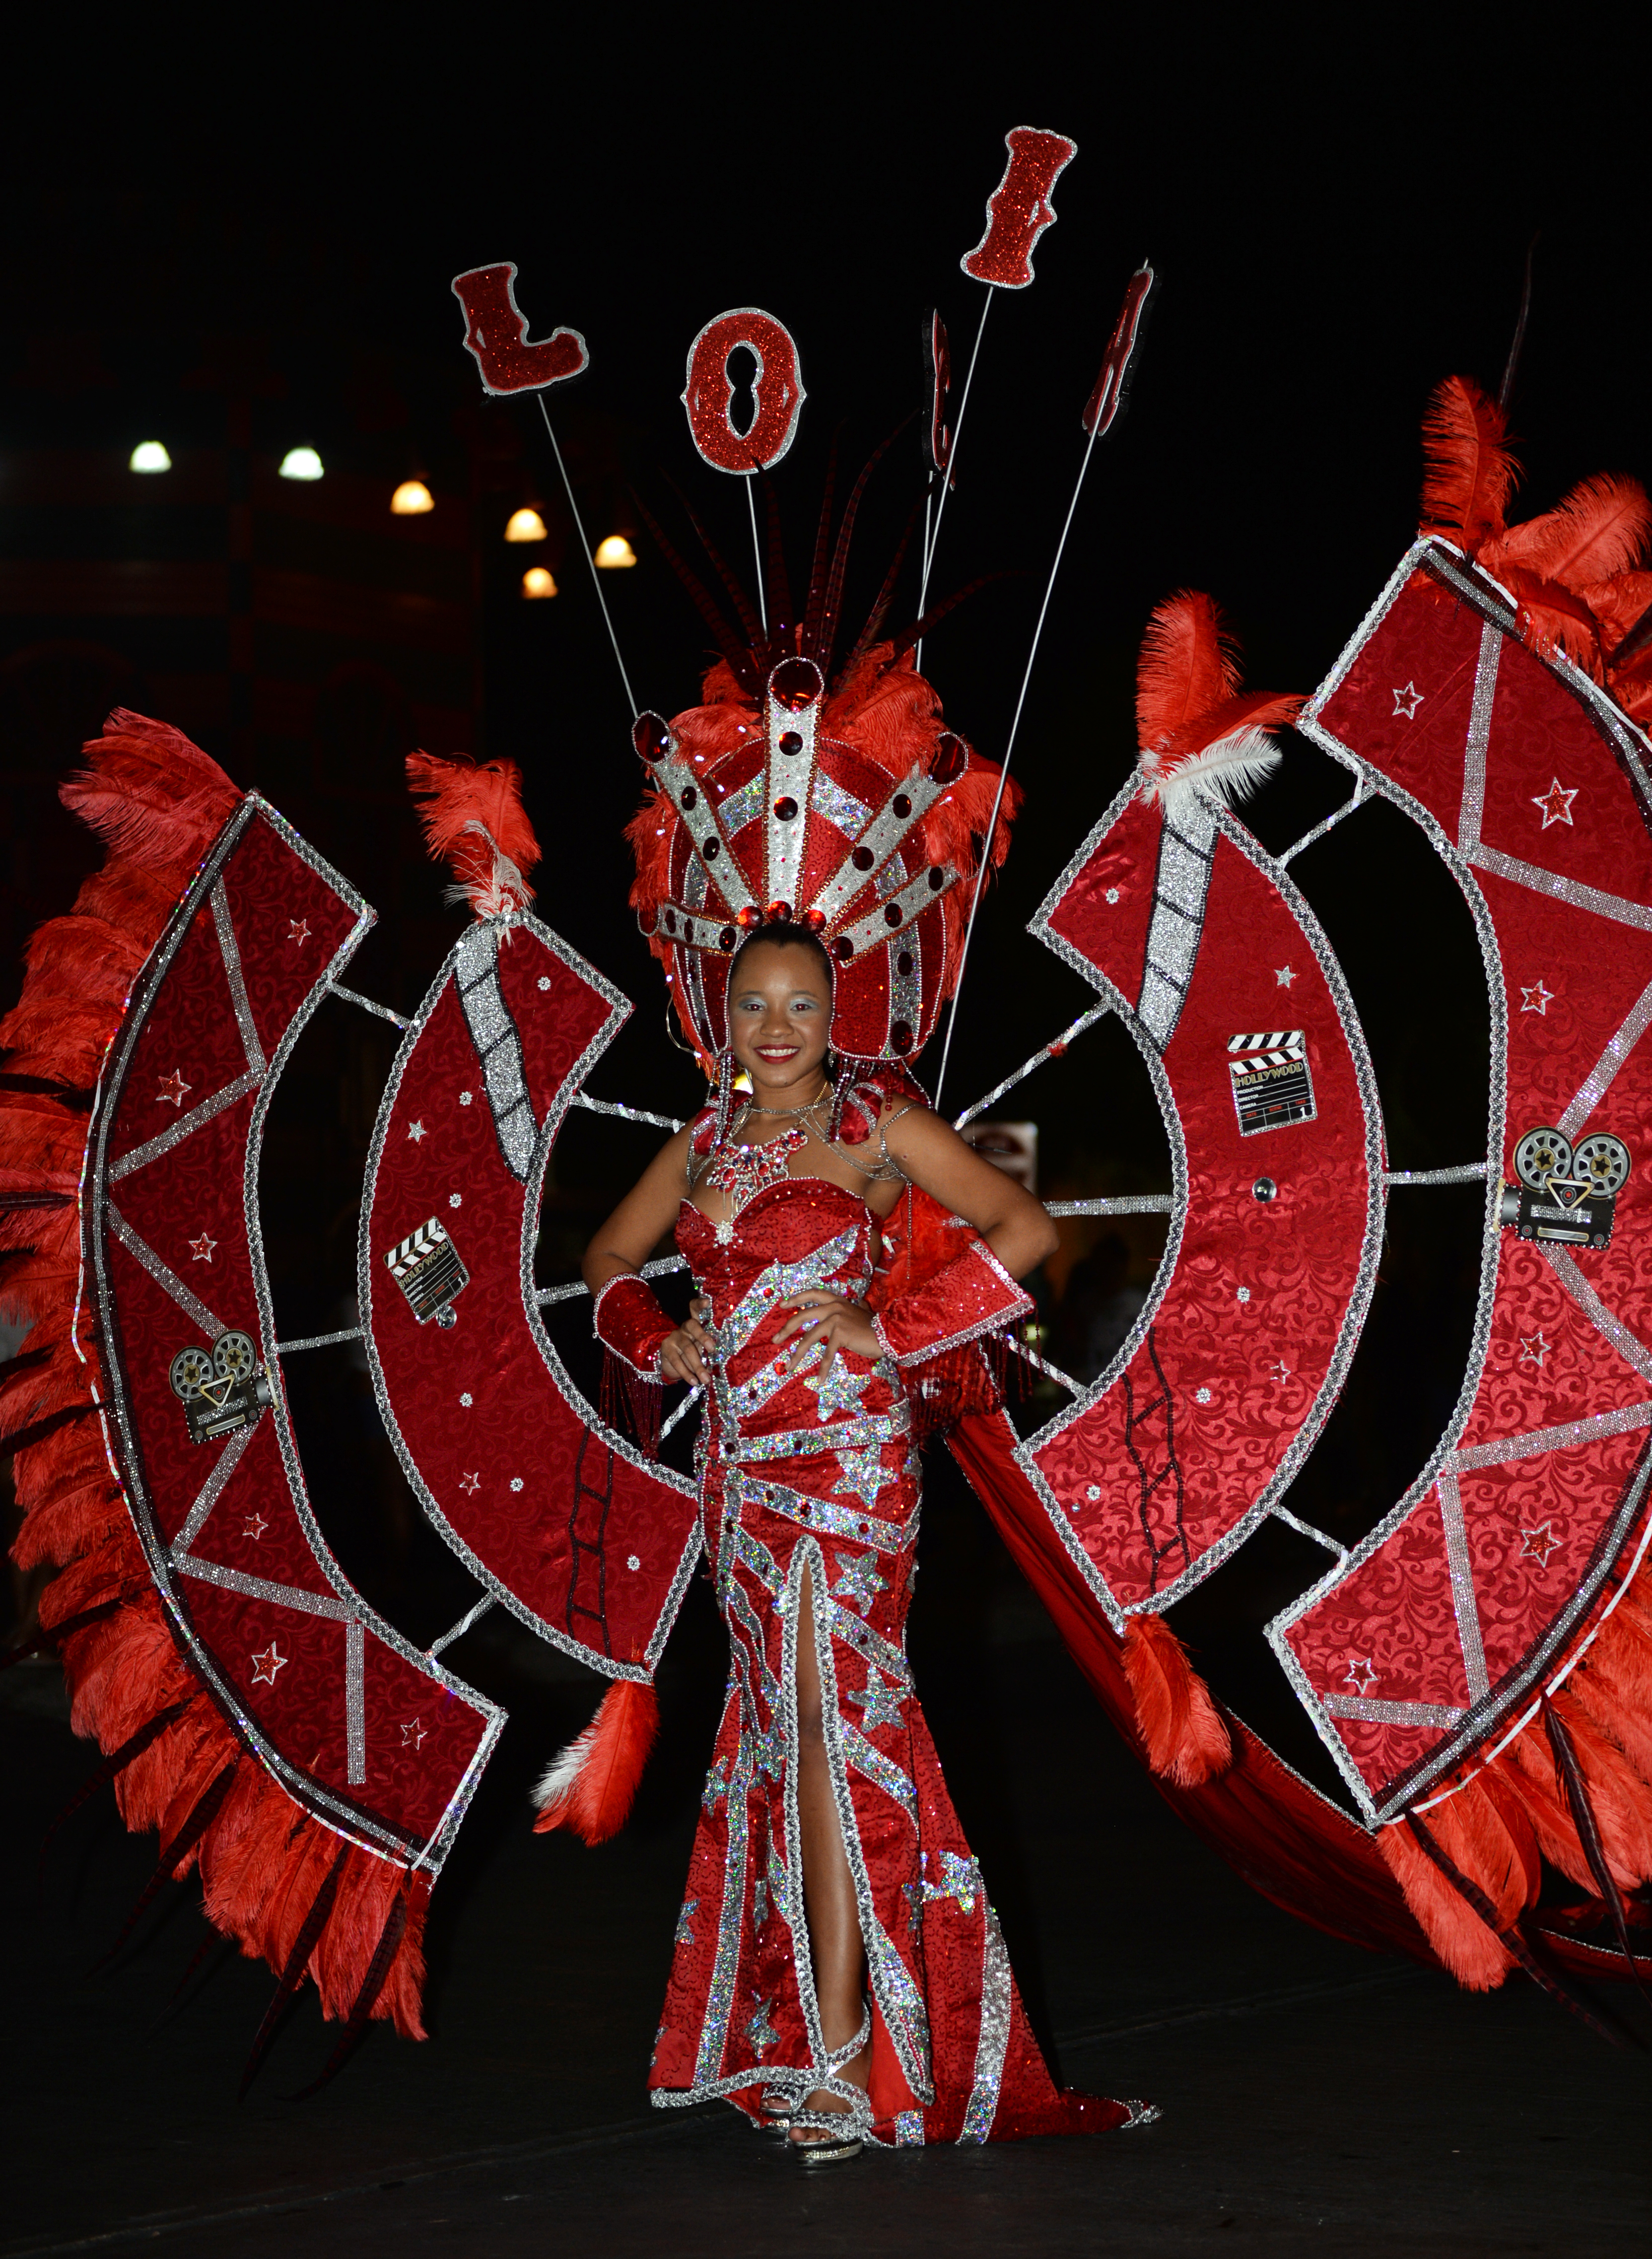 Ponce Carnival Meaning